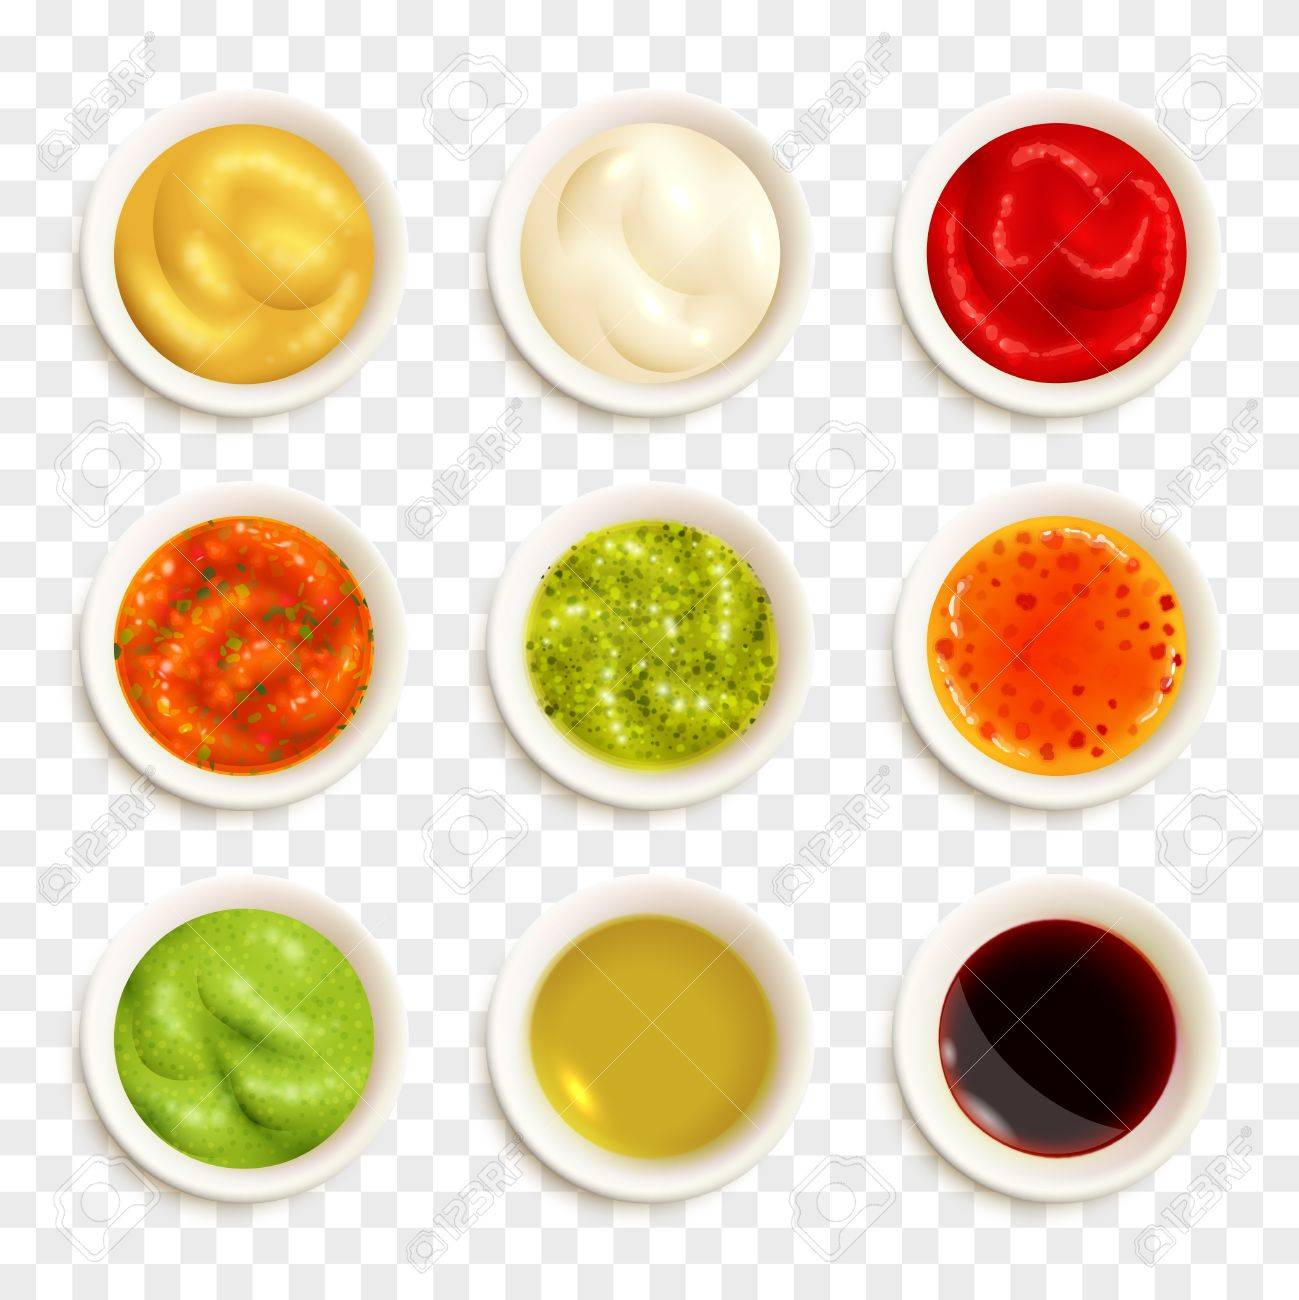 Set of color icons depicting different sauce in plate vector illustration - 63155132